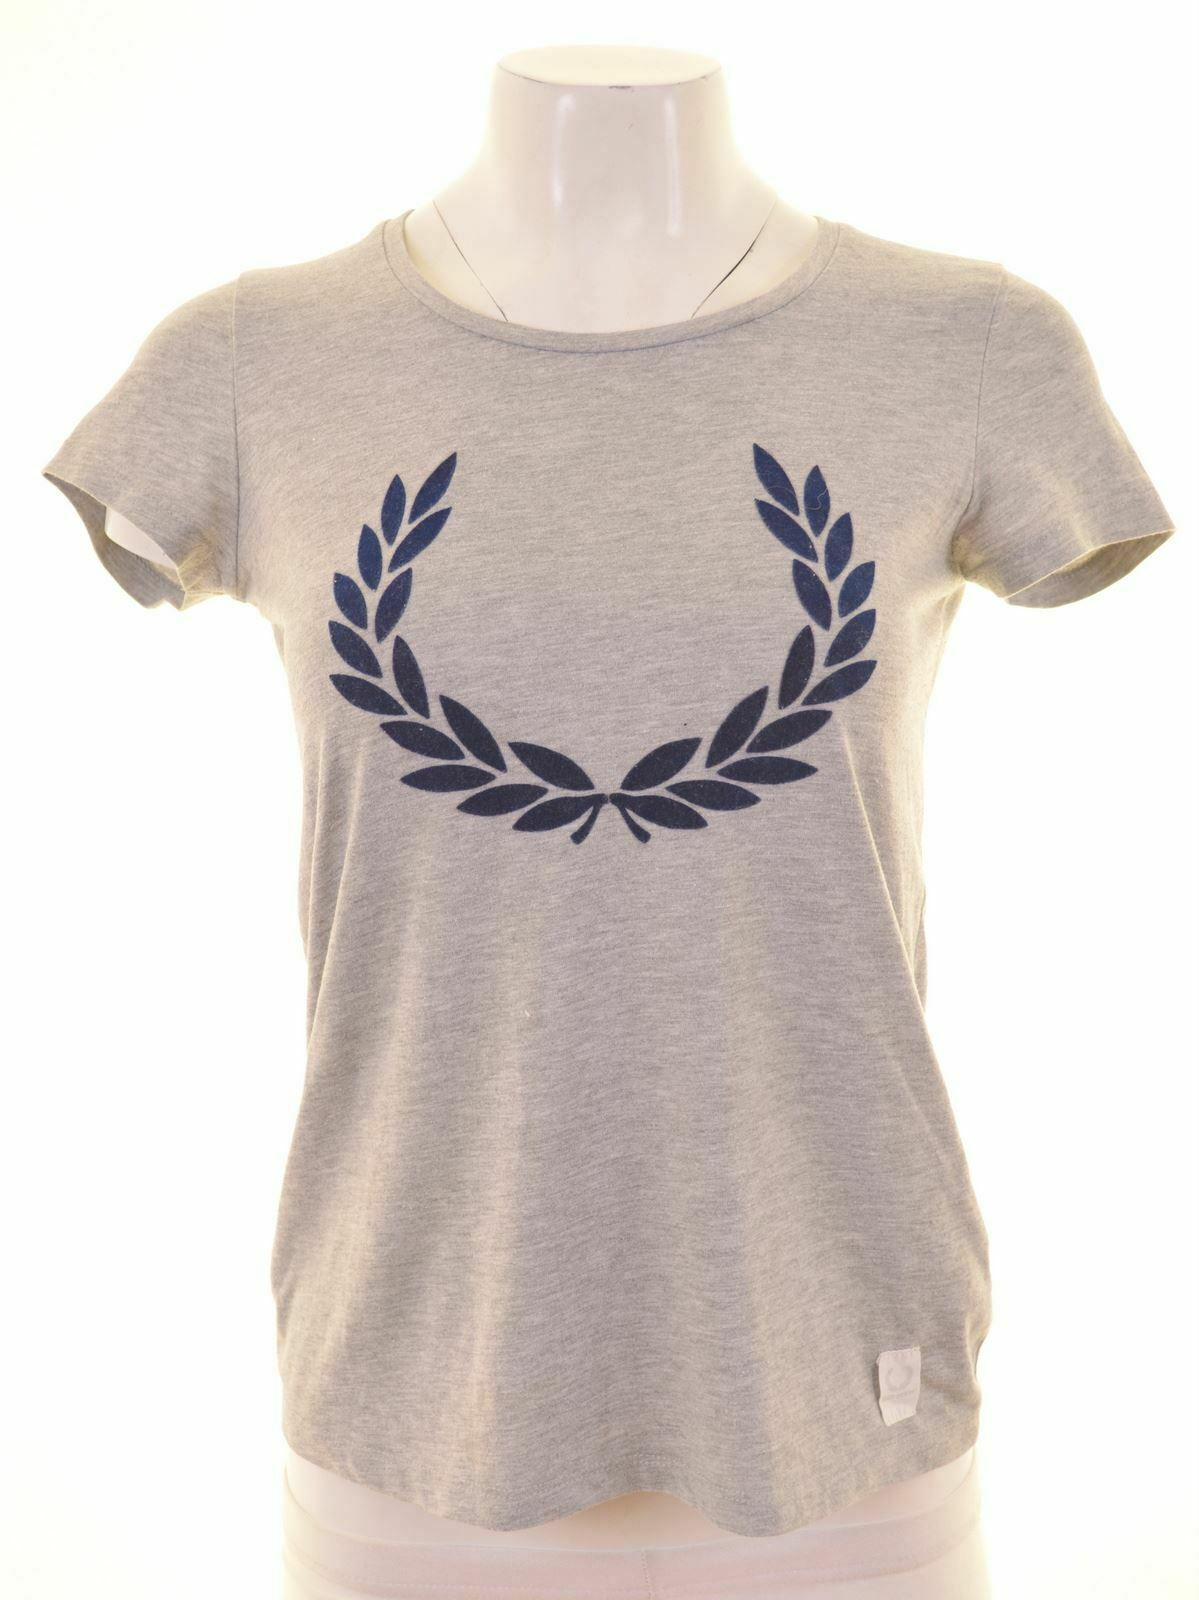 FRED PERRY Womens Graphic T-Shirt